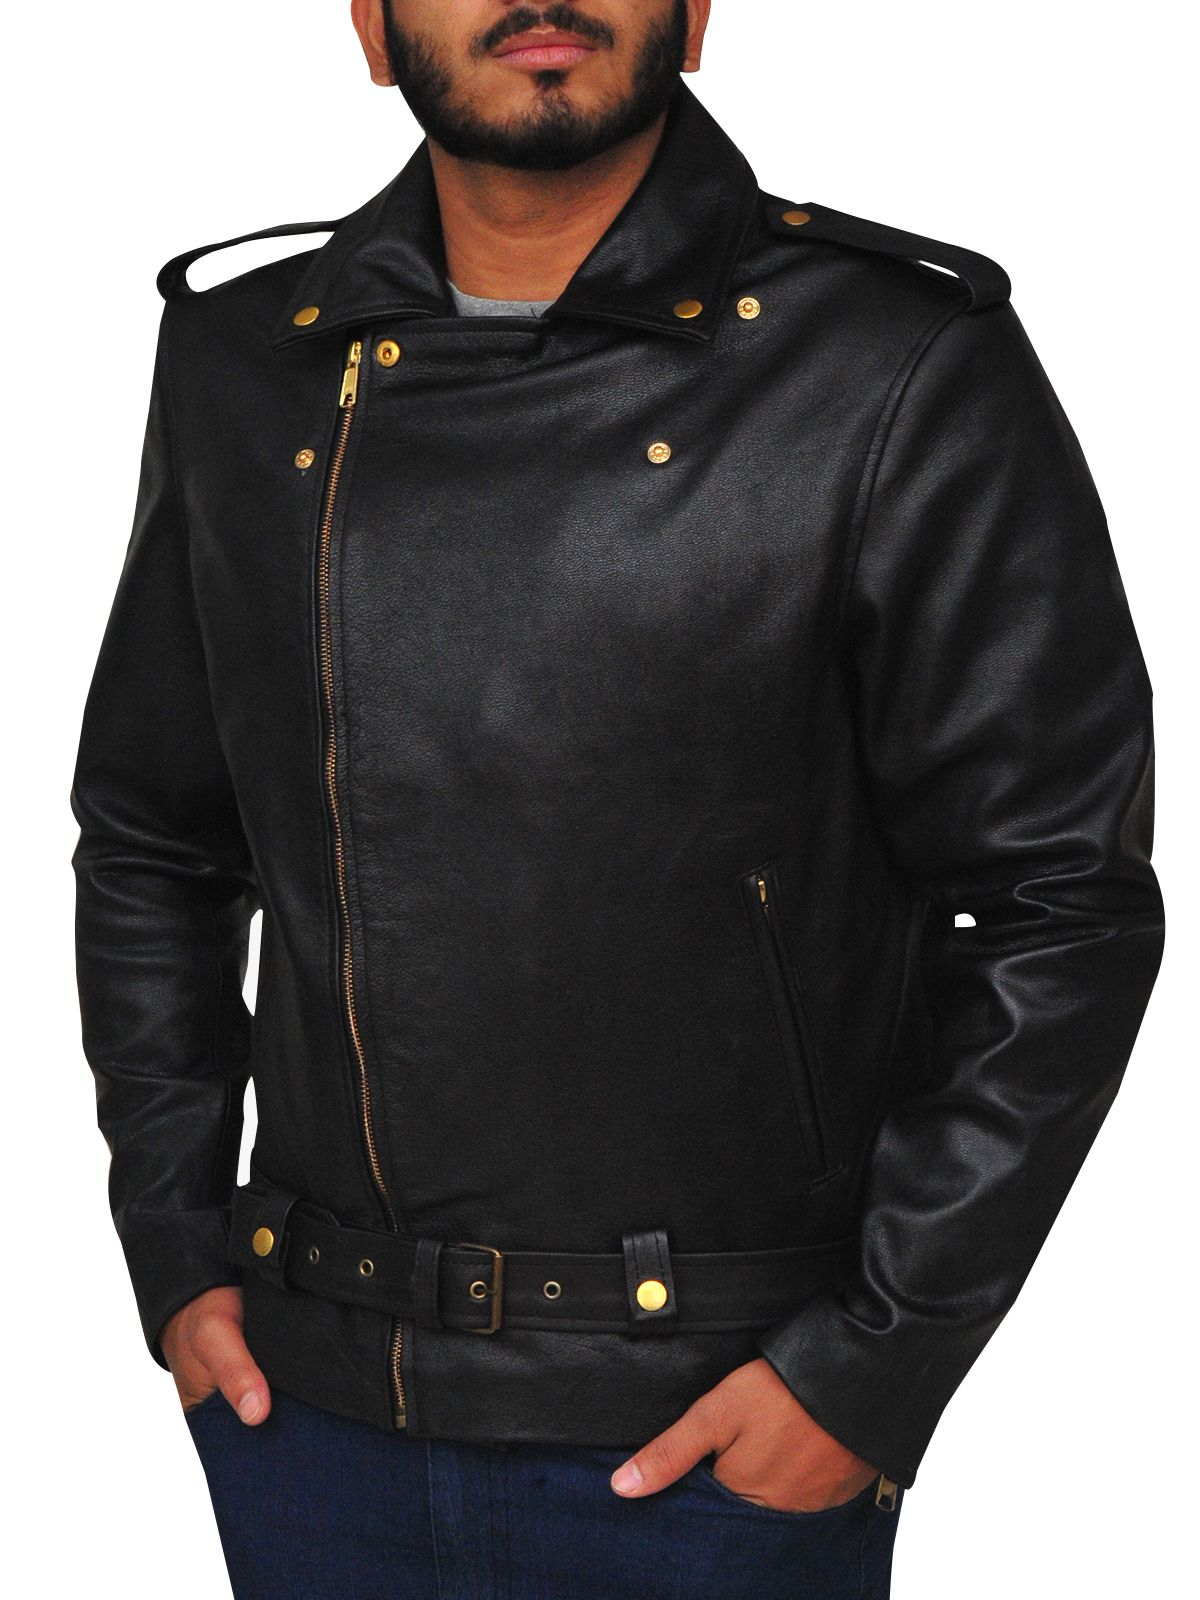 Topleatherjackets Brand Provide The Best Men Lambskin Fashion Biker Leather Jacket At Best Selling Price Classic Leather Jacket Buy Mens Fashion Mens Fashion